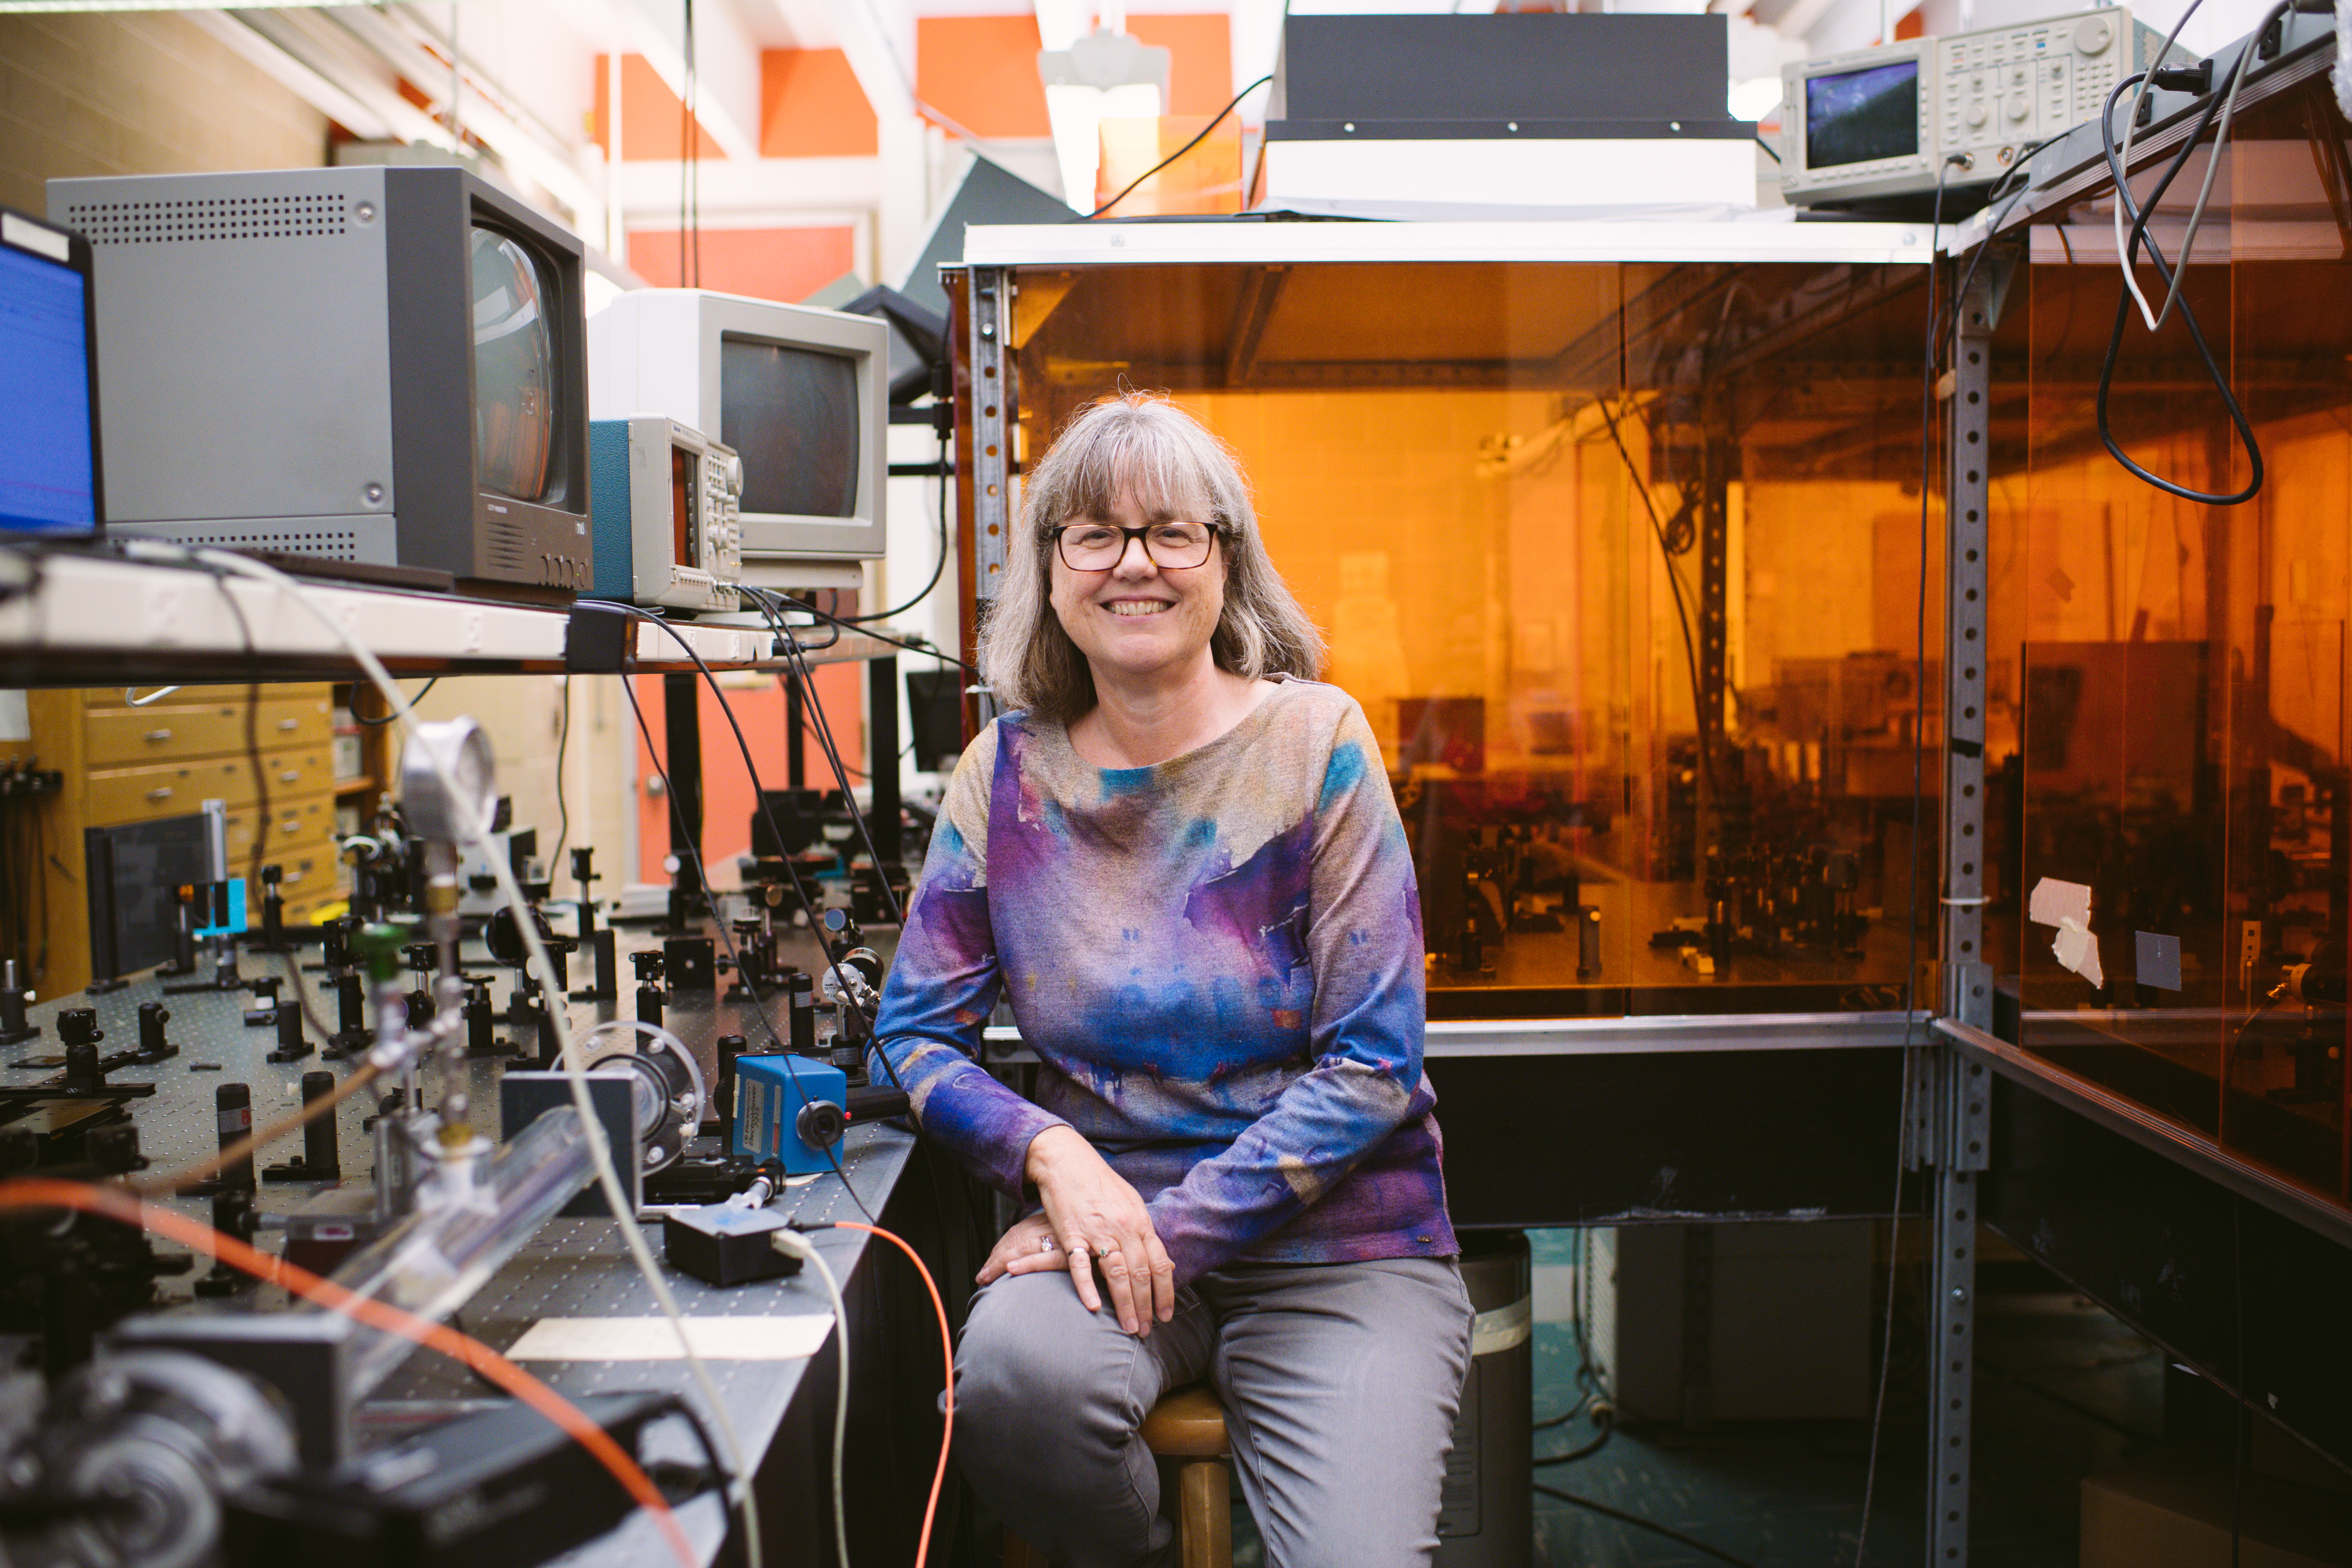 University of Waterloo professor Donna Strickland won the 2018 Nobel Prize in physics.